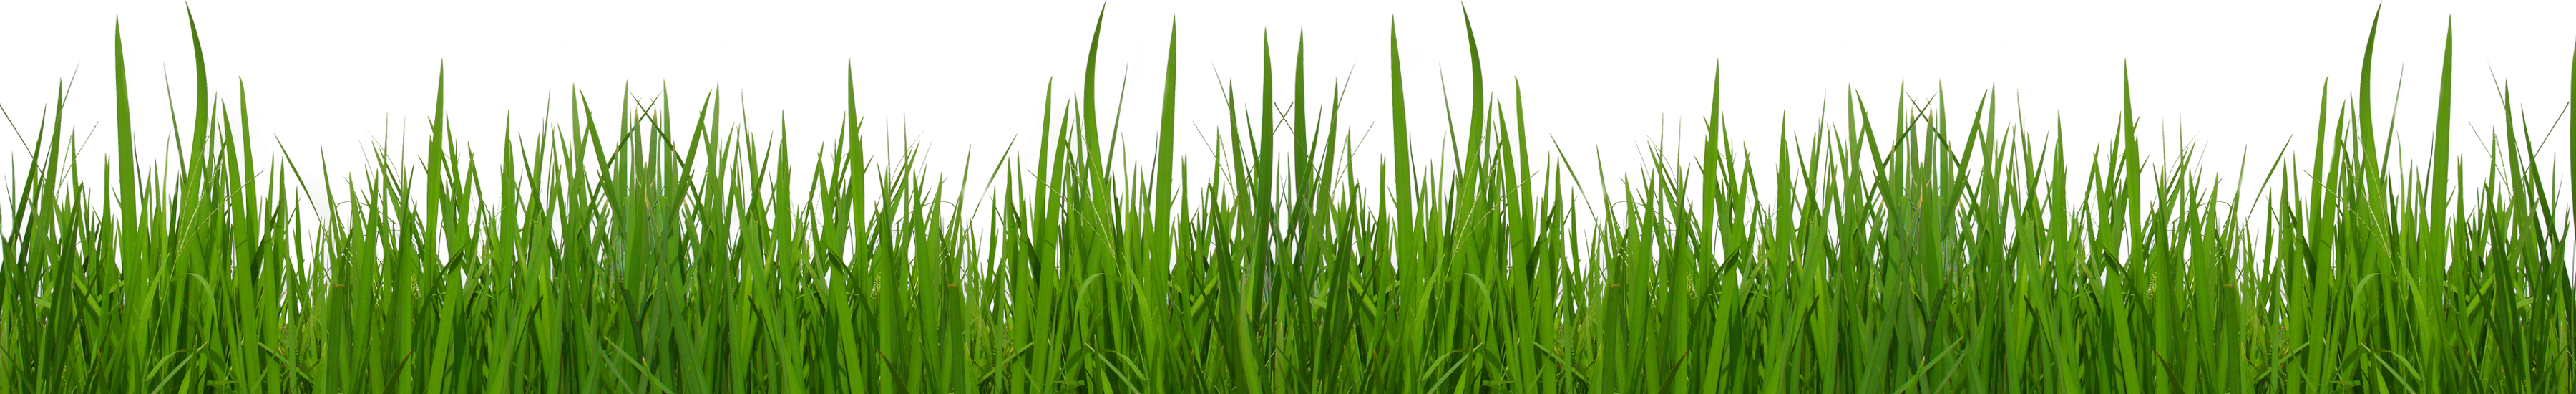 png transparent Png picture clipat gallery. Lawn care clipart high grass.